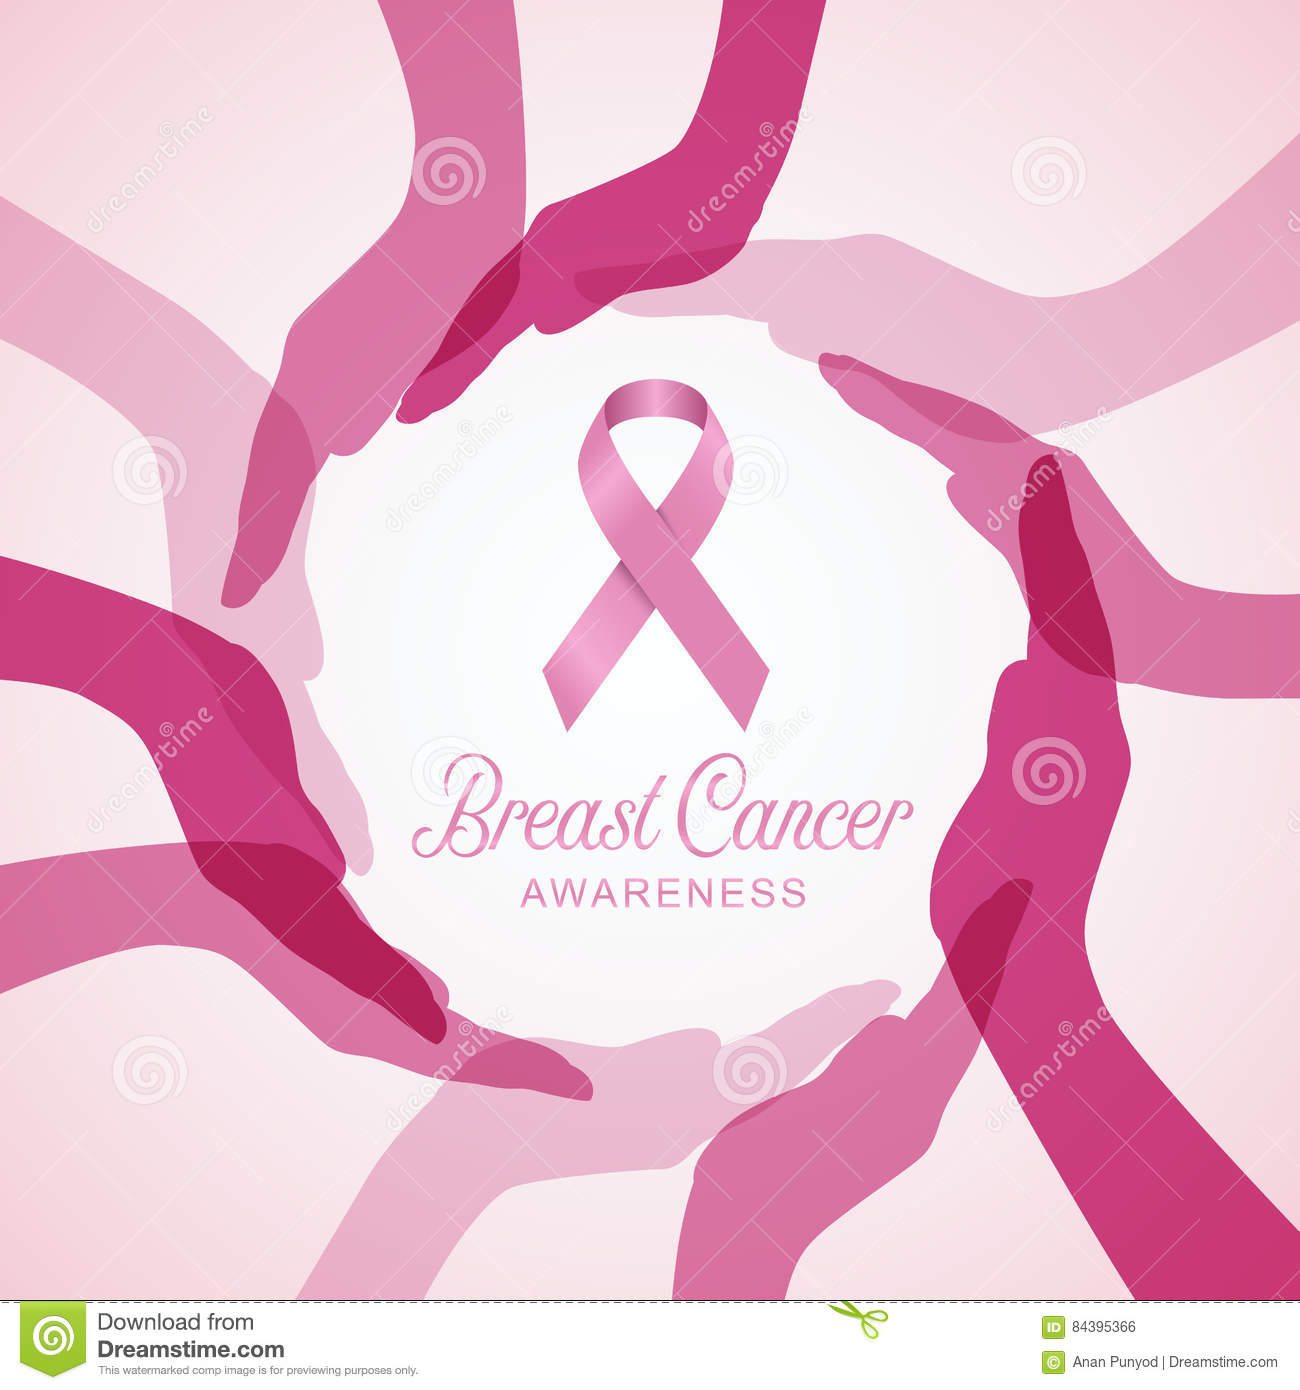 Breast Cancer Awareness With Pink Ribbon In Circle Hands